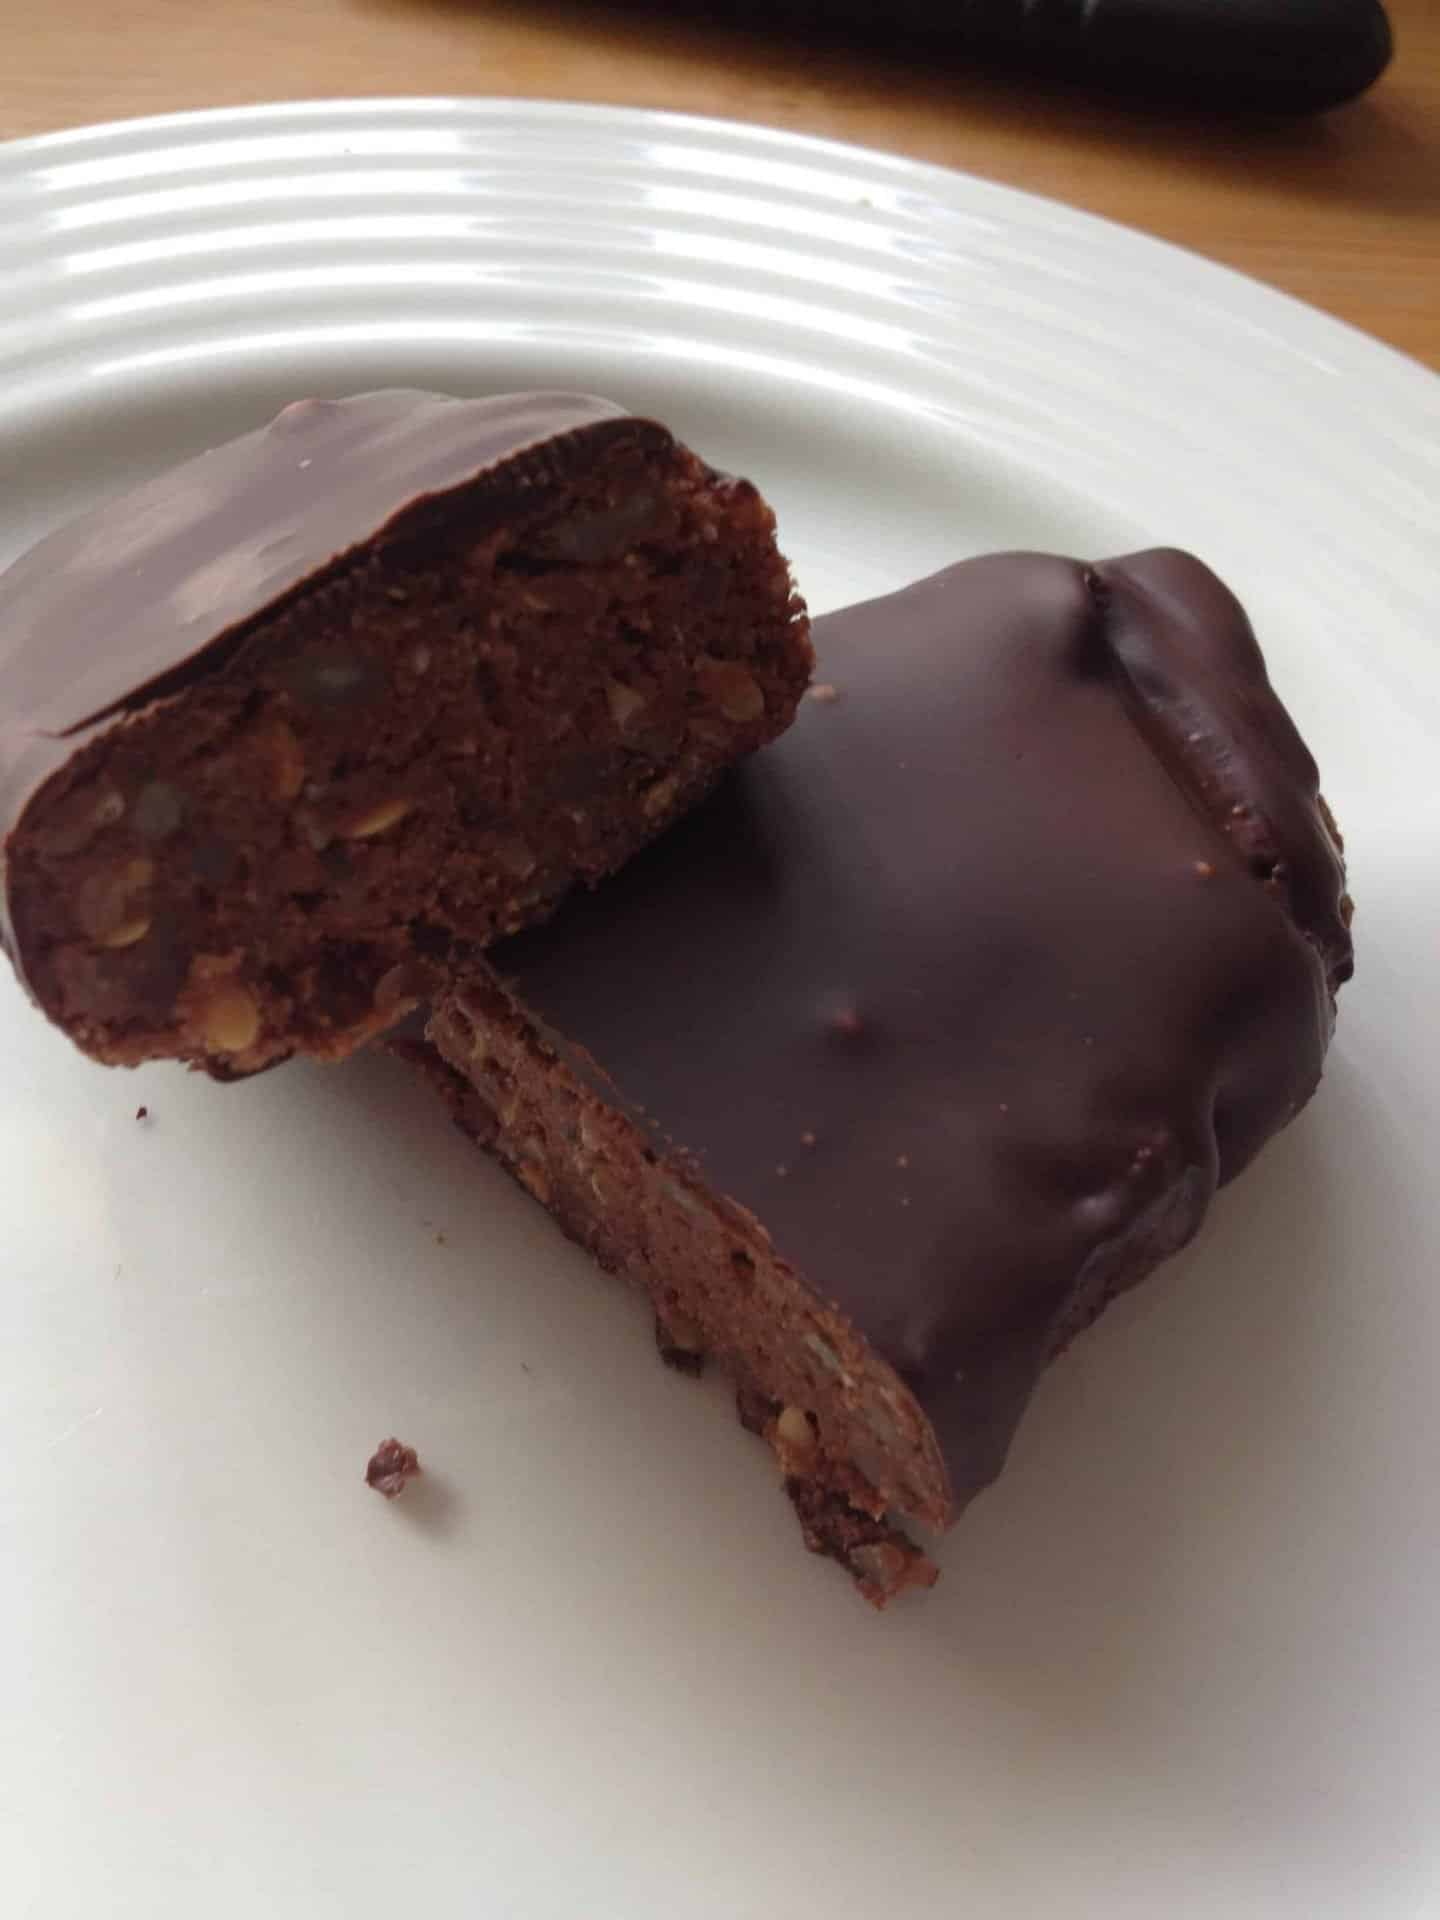 Gluten free, low carb, amazing chocolate covered protein bars!